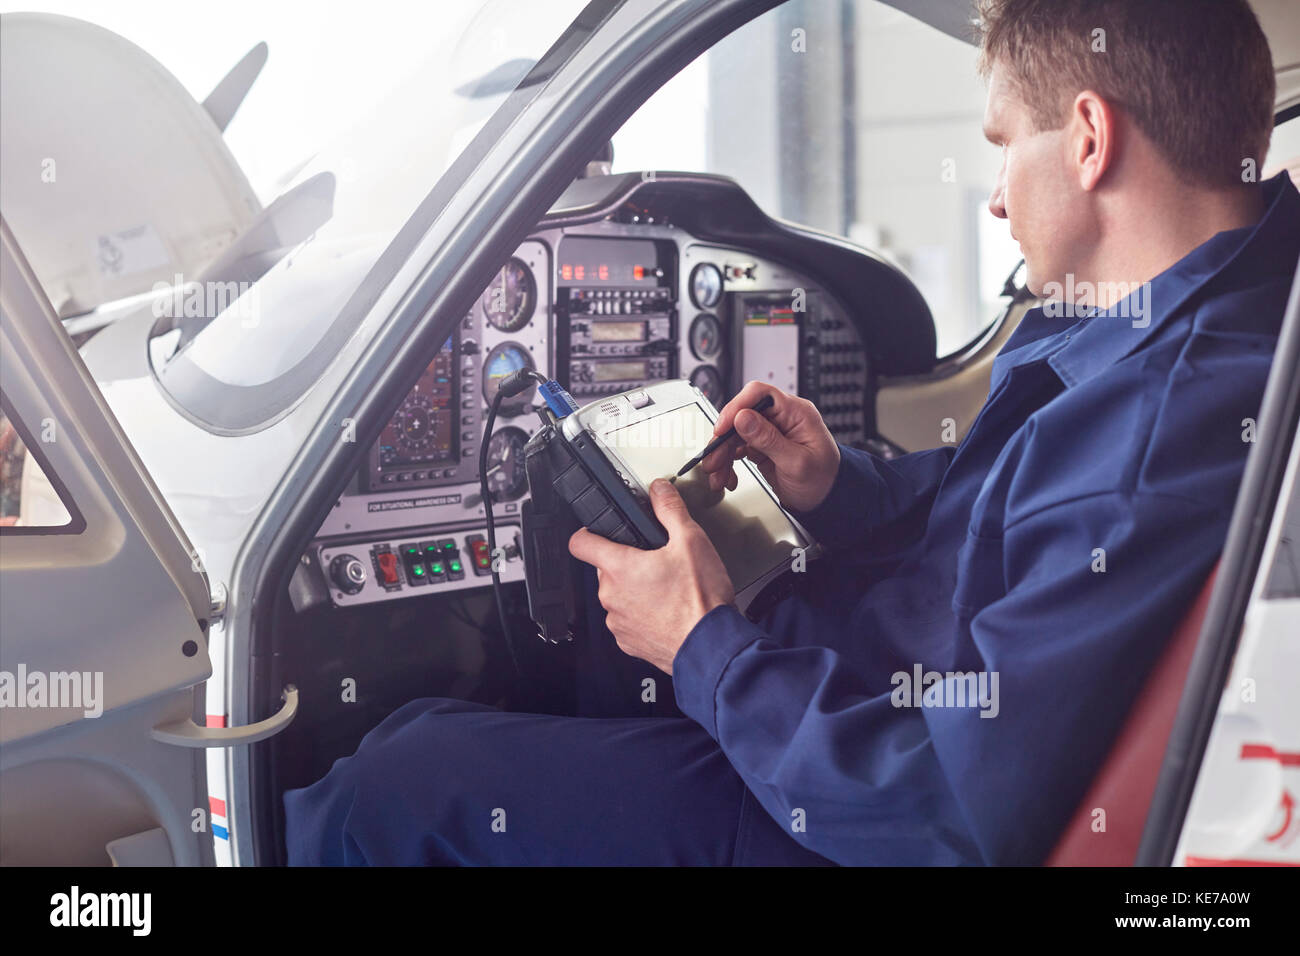 Male engineer checking diagnostics with digital tablet in airplane cockpit - Stock Image